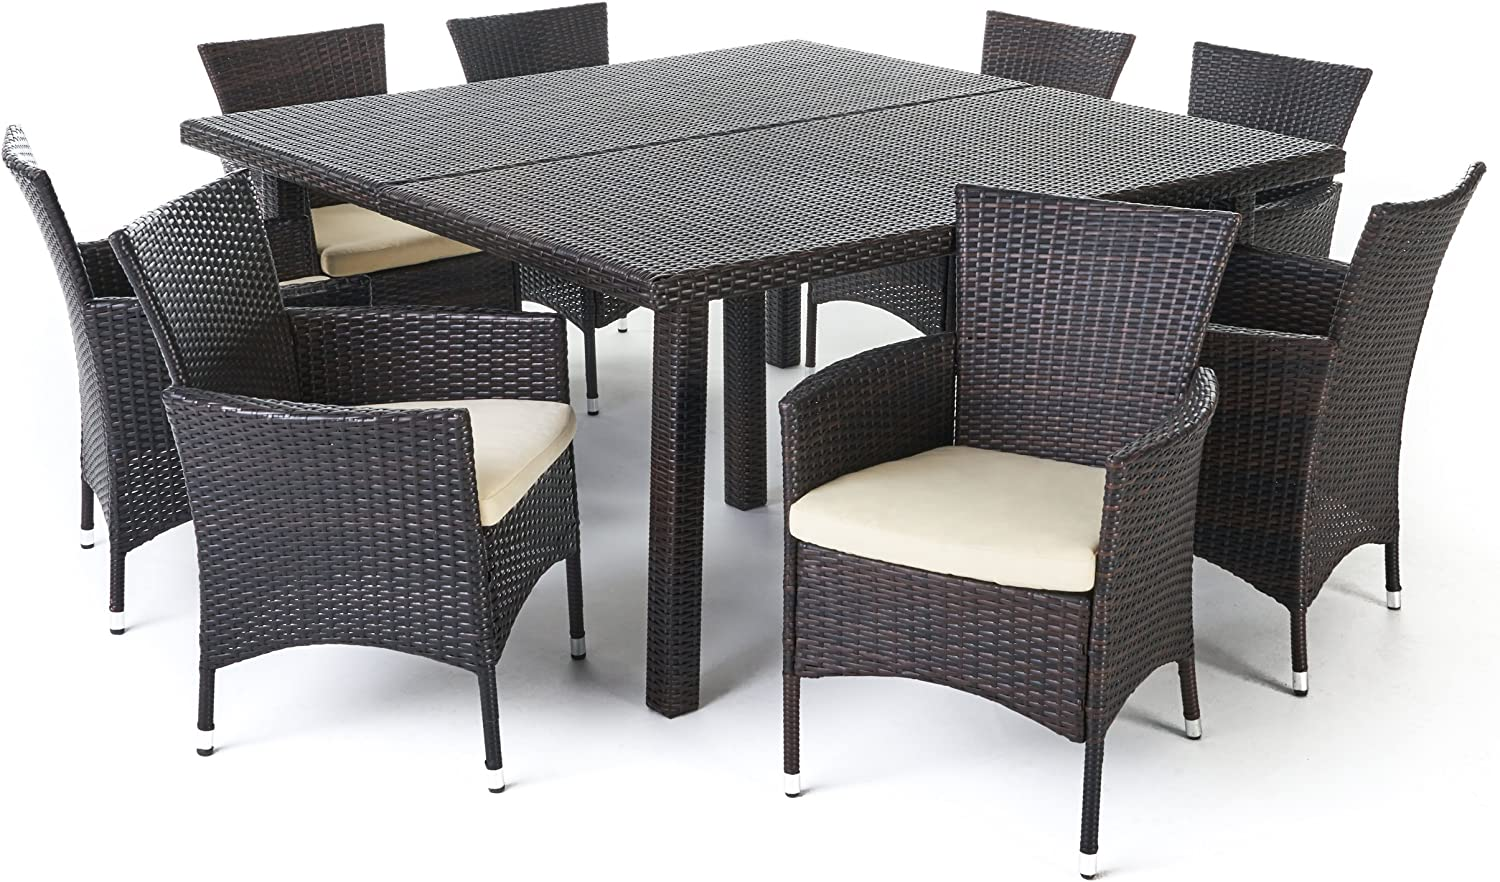 Christopher Knight Home Danae Outdoor 9 Piece Multibrown Wicker Square Dining Set with Beige Water Resistant Cushions 91vDmM-lIzLSL1500_